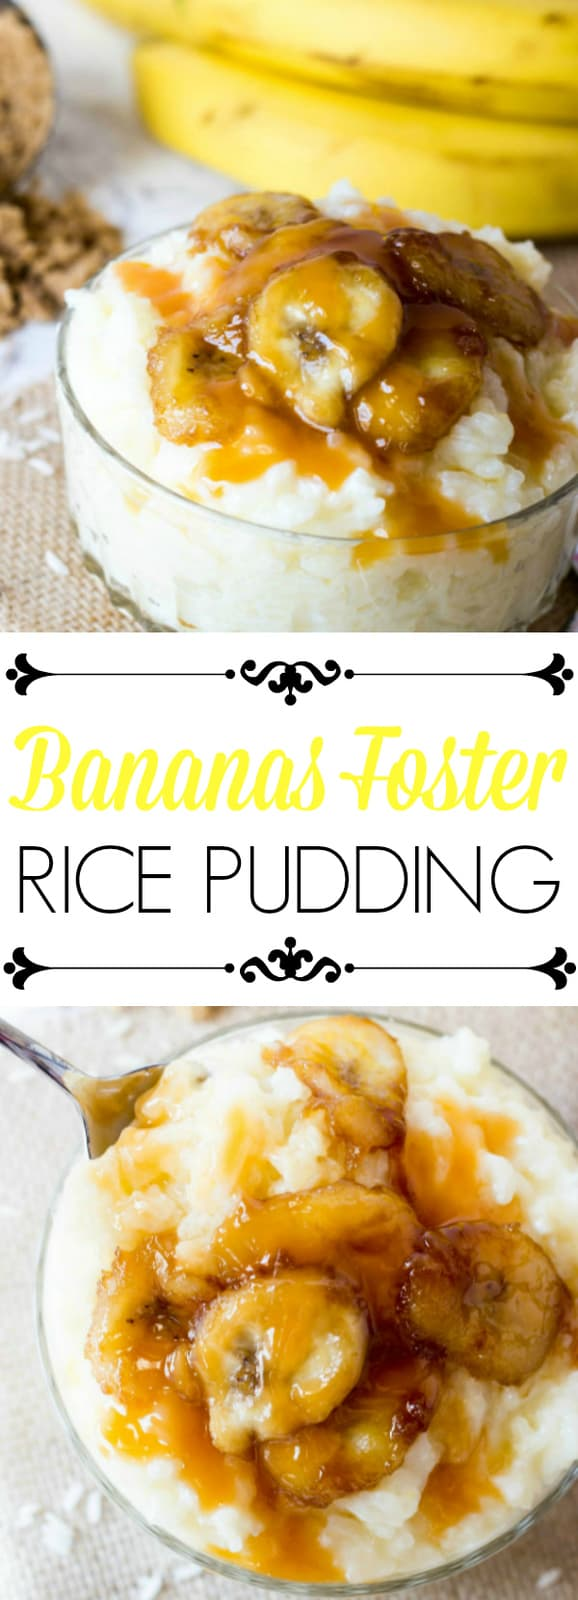 Bananas Foster Rice Pudding pointers image with words in middle